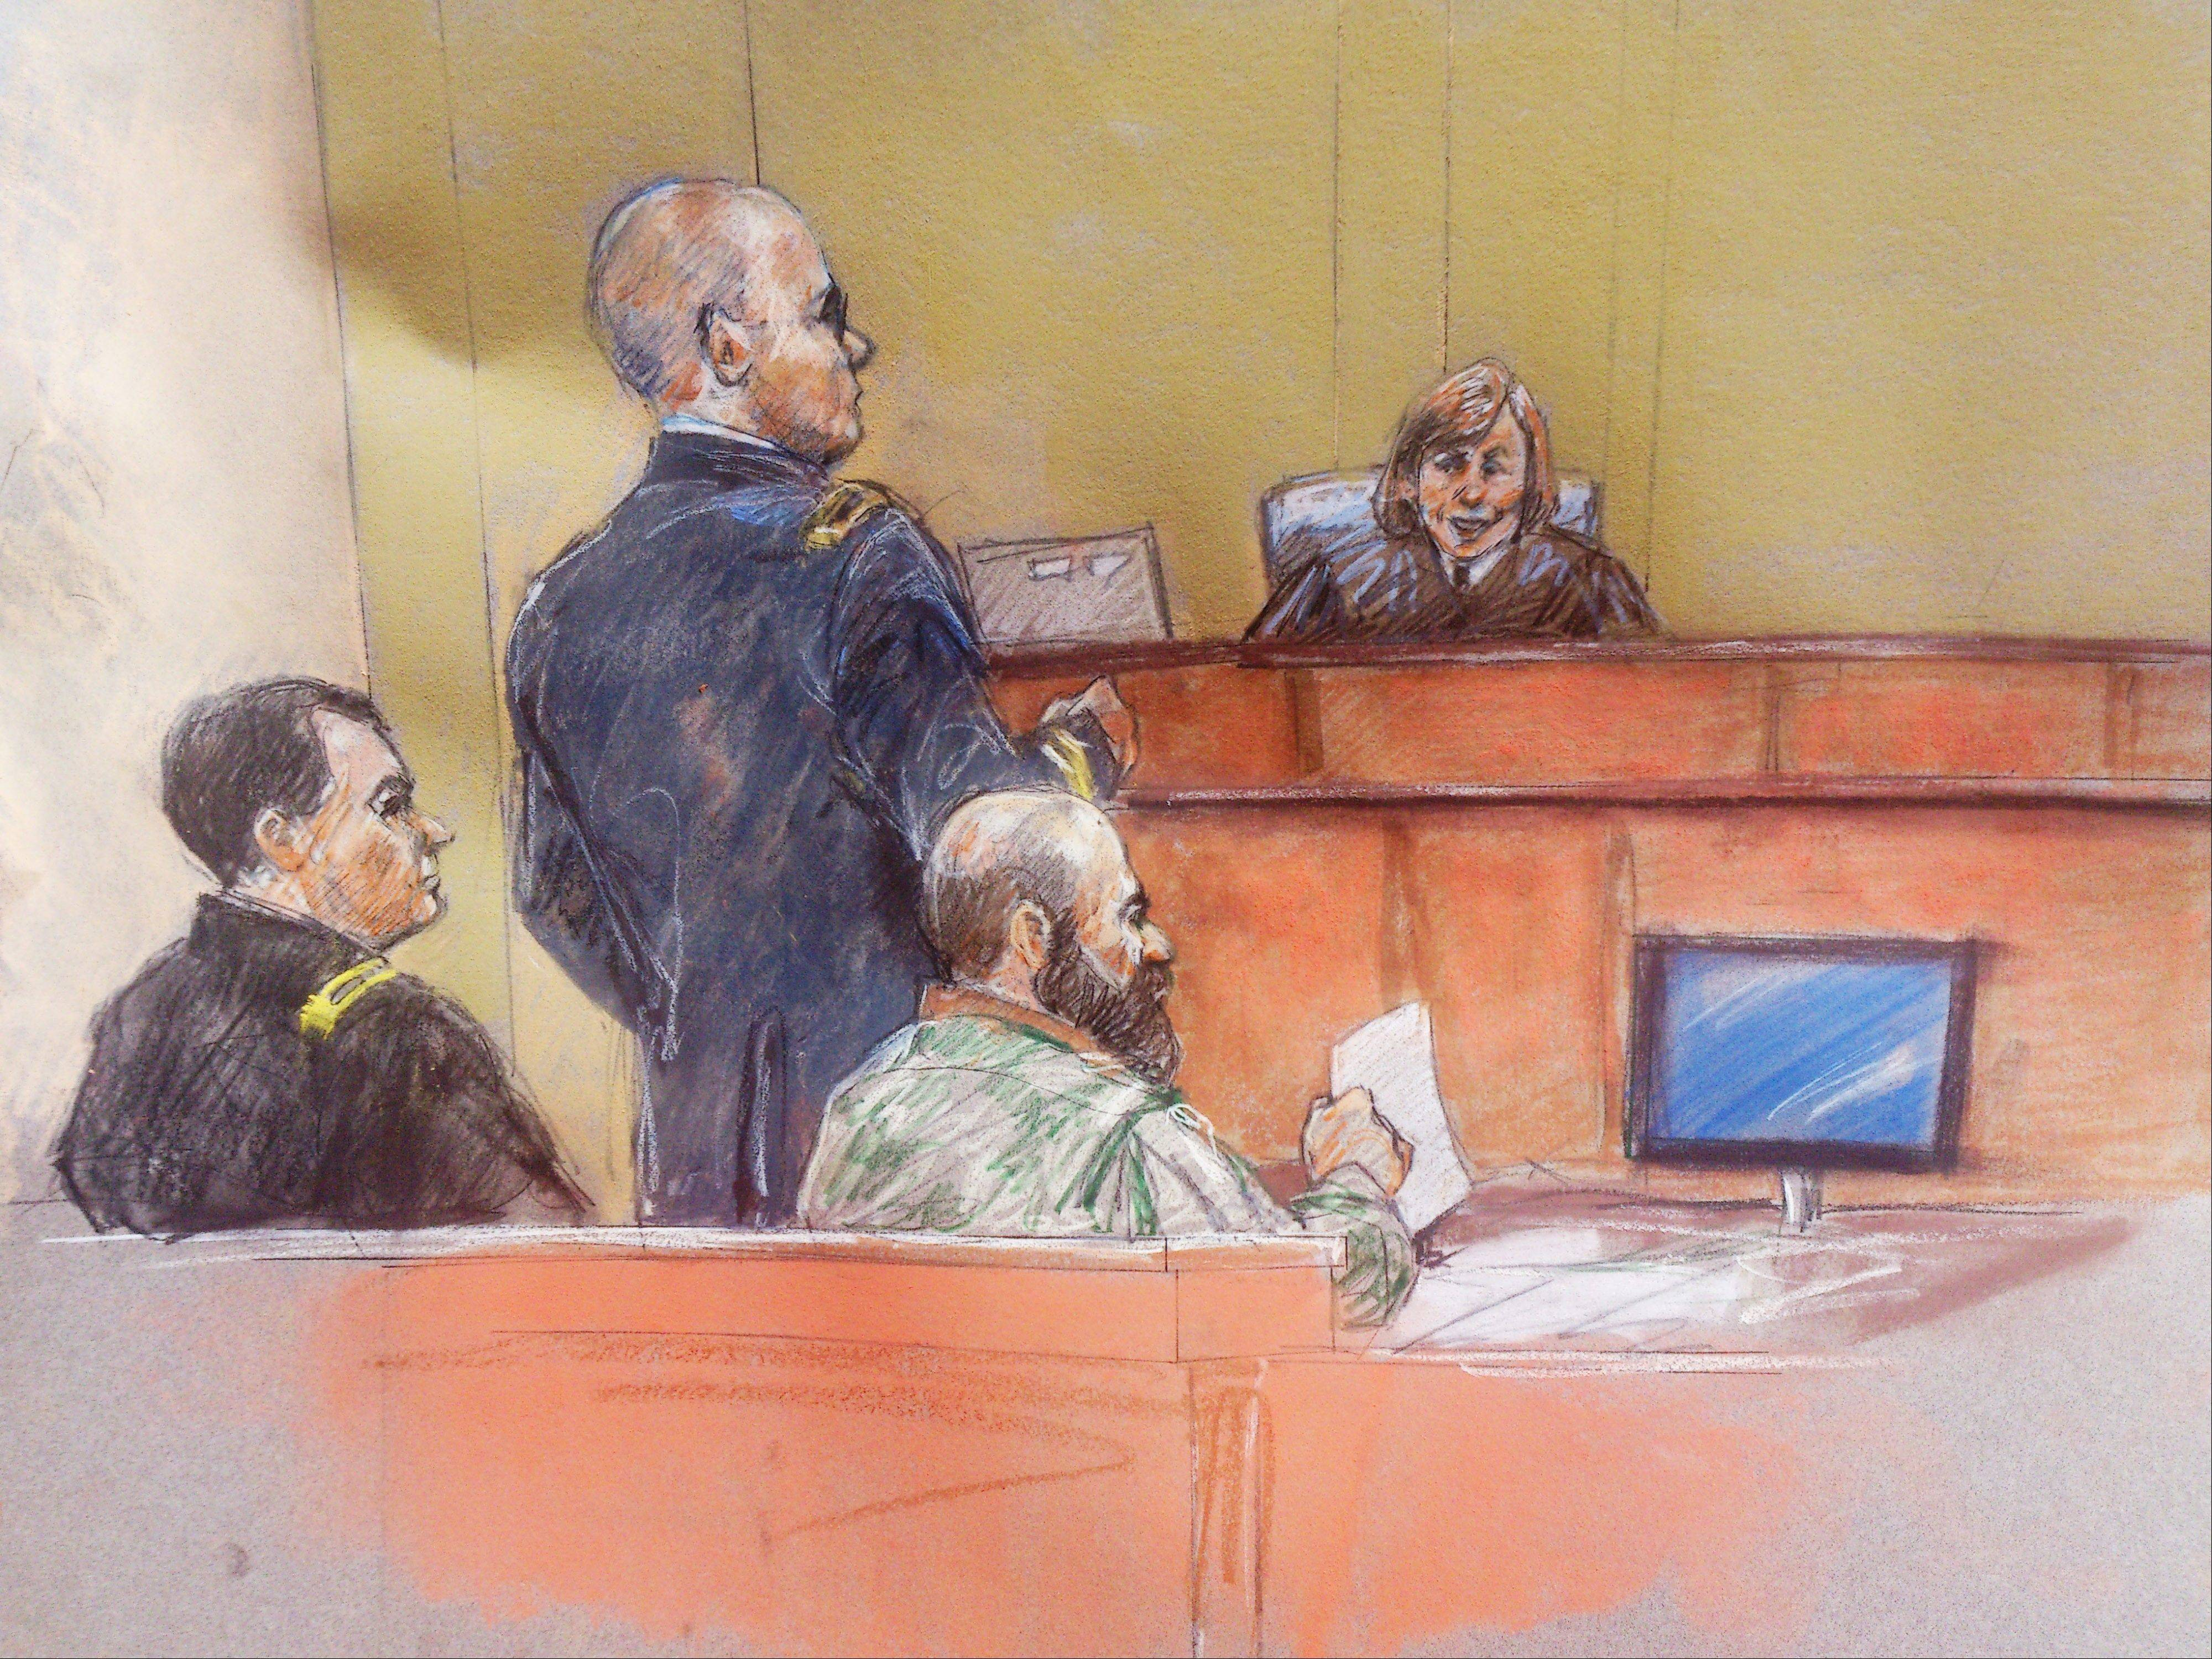 In this Aug. 8, 2013 file courtroom sketch, Maj. Nidal Hasan, second from right, sits with his standby defense attorneys Maj. Joseph Marcee, left, and Lt. Col. Kris Poppe, second from left, as presiding judge Col. Tara Osborn looks on, during Hasan�s trial, in Fort Hood, Texas.